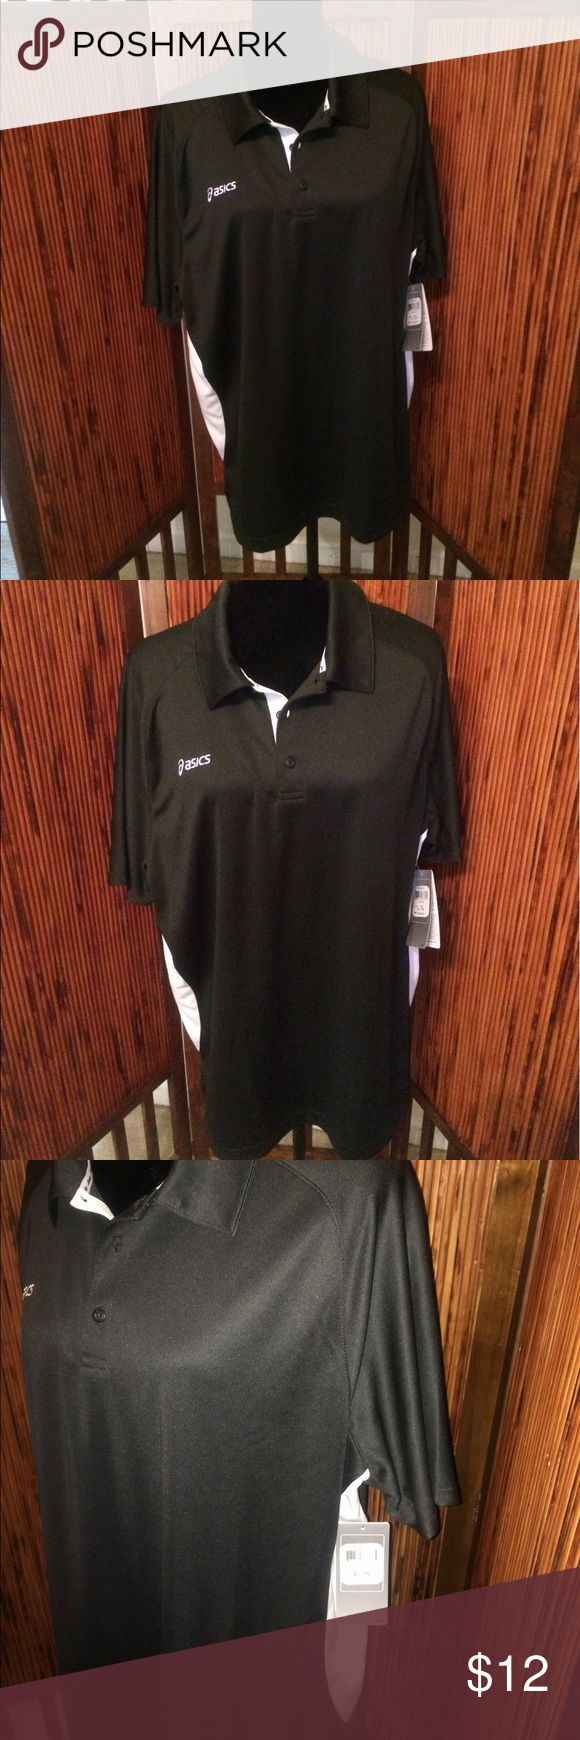 Asics Men's NWT Short Sleeved Shirt Size XL Asics Men's NWT Short Sleeved Shirt Size XL.  New with original tag attached.  Black color shirt with white accents.  100% polyester.  No flaws.  Comes from a smoke and pet free home.  Thanks for looking 😊 Asics Shirts Polos